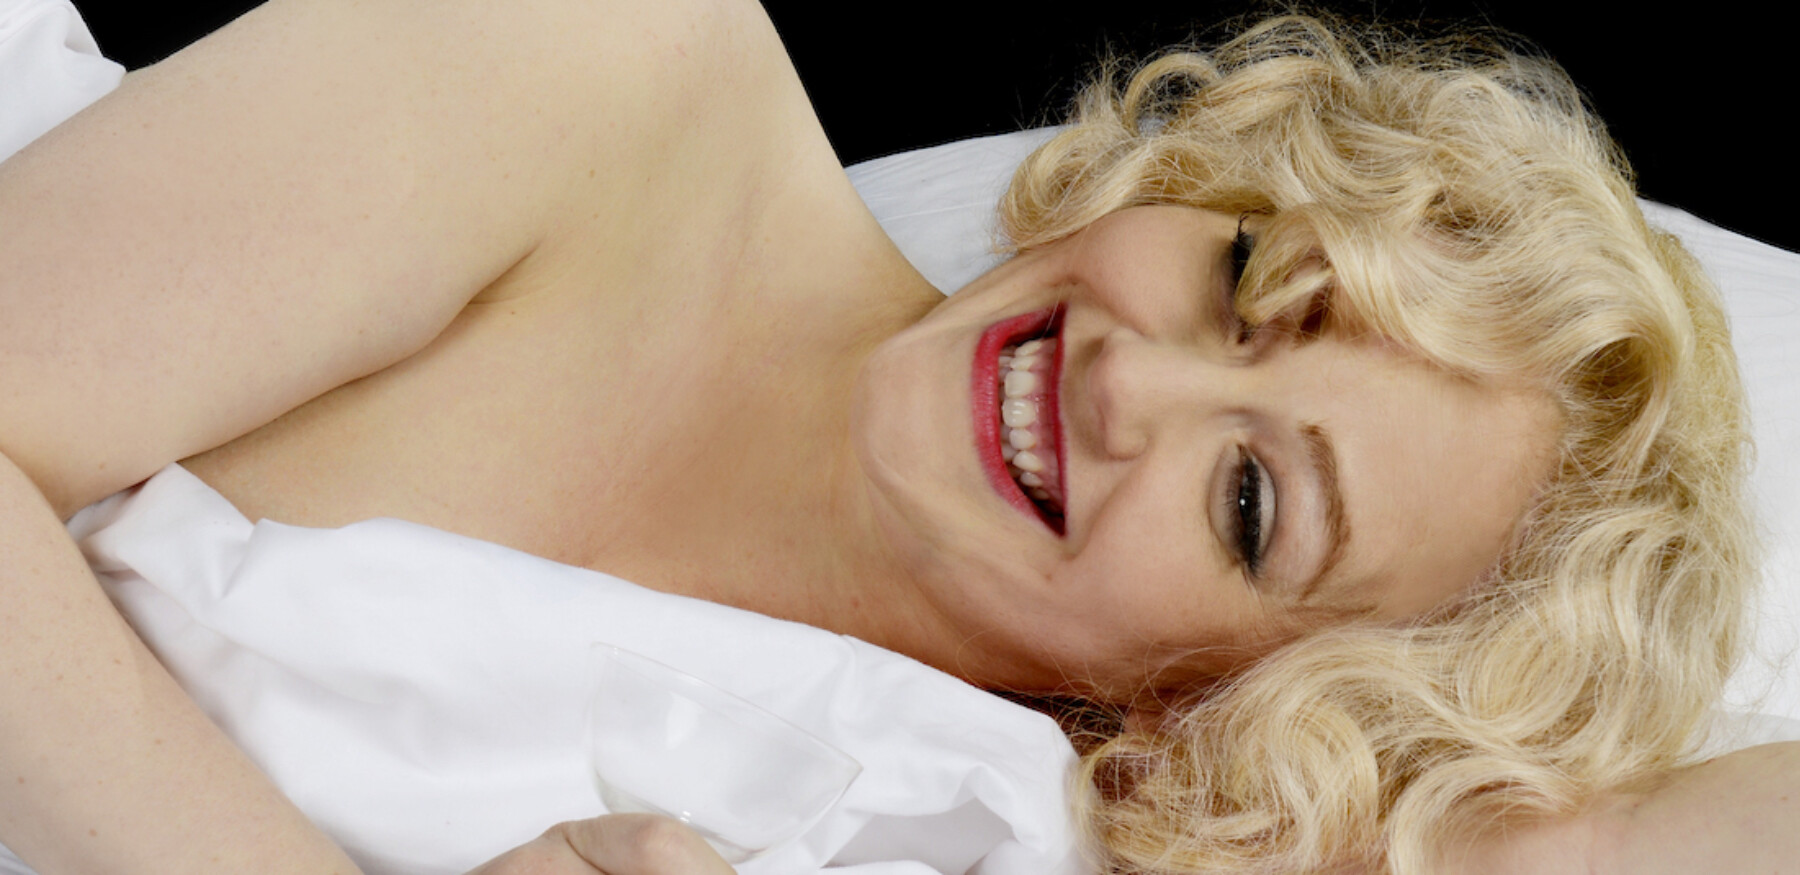 THE UNREMARKABLE DEATH OF MARILYN MONROE Main Image high res jpeg 1600 x 535 pixels